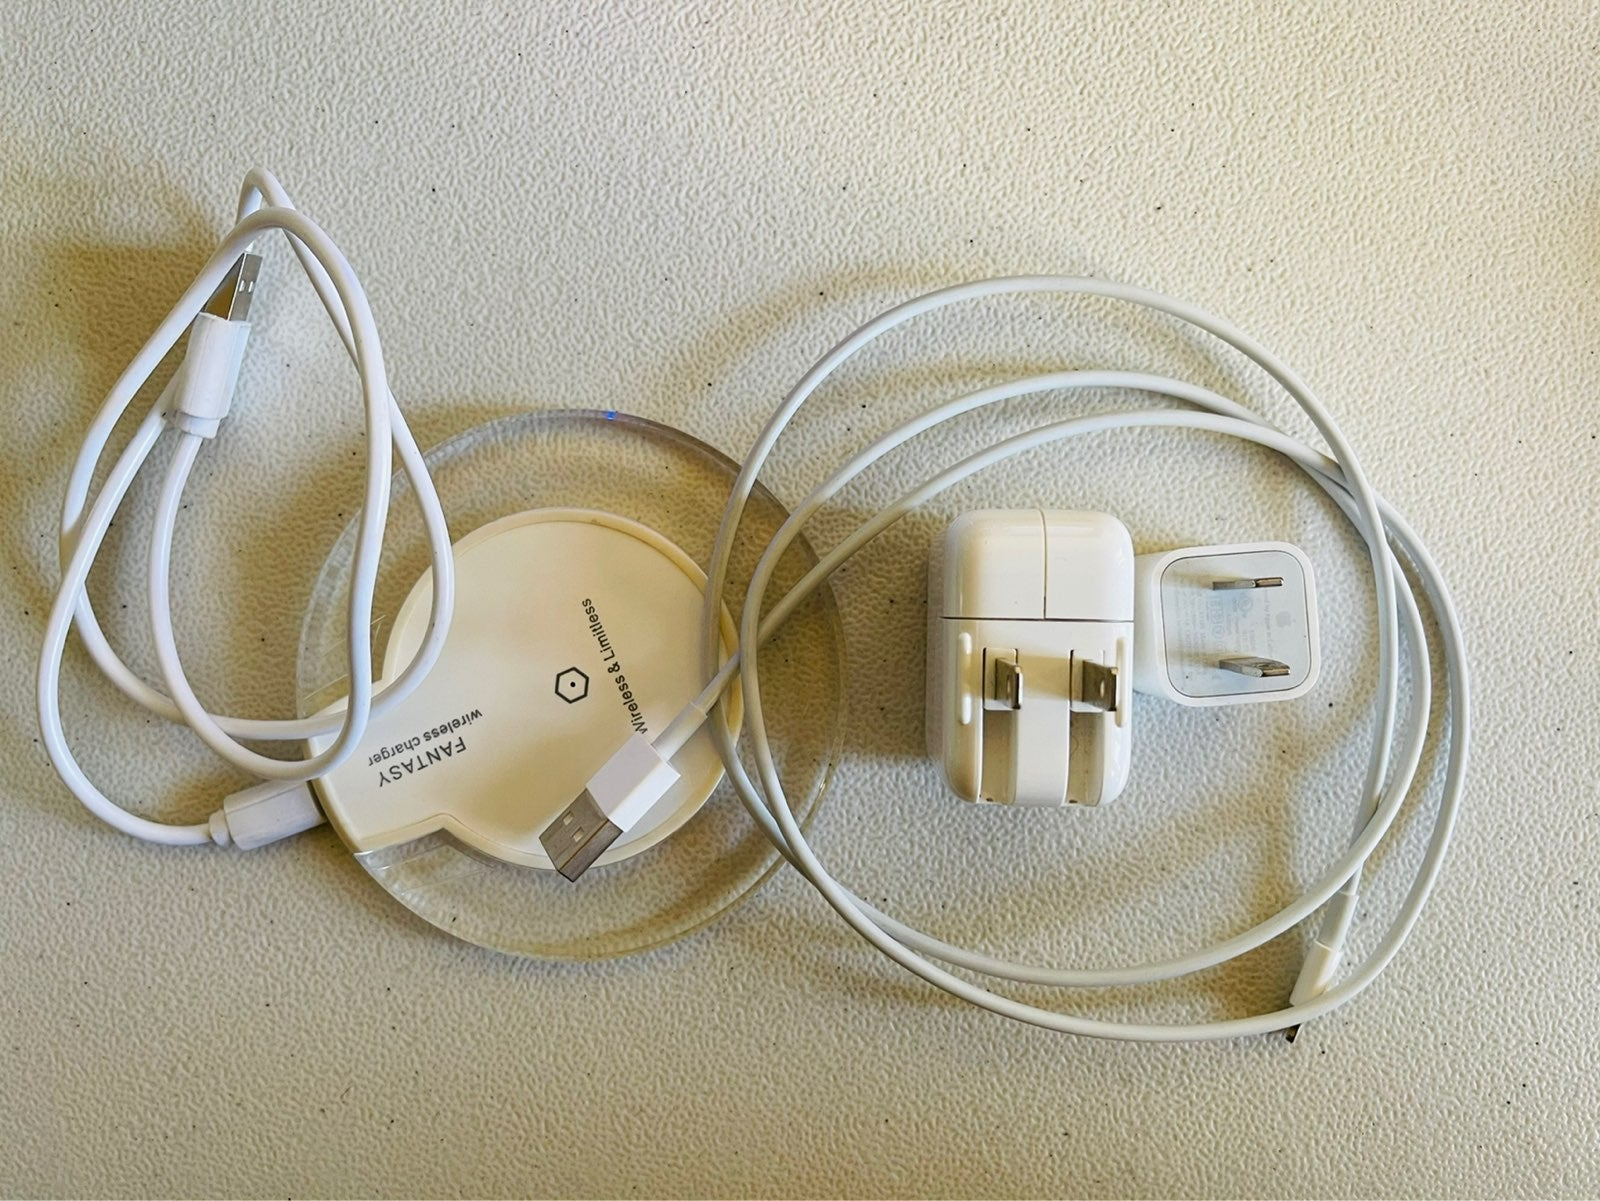 iPad and iPhone Adapter wireless charger